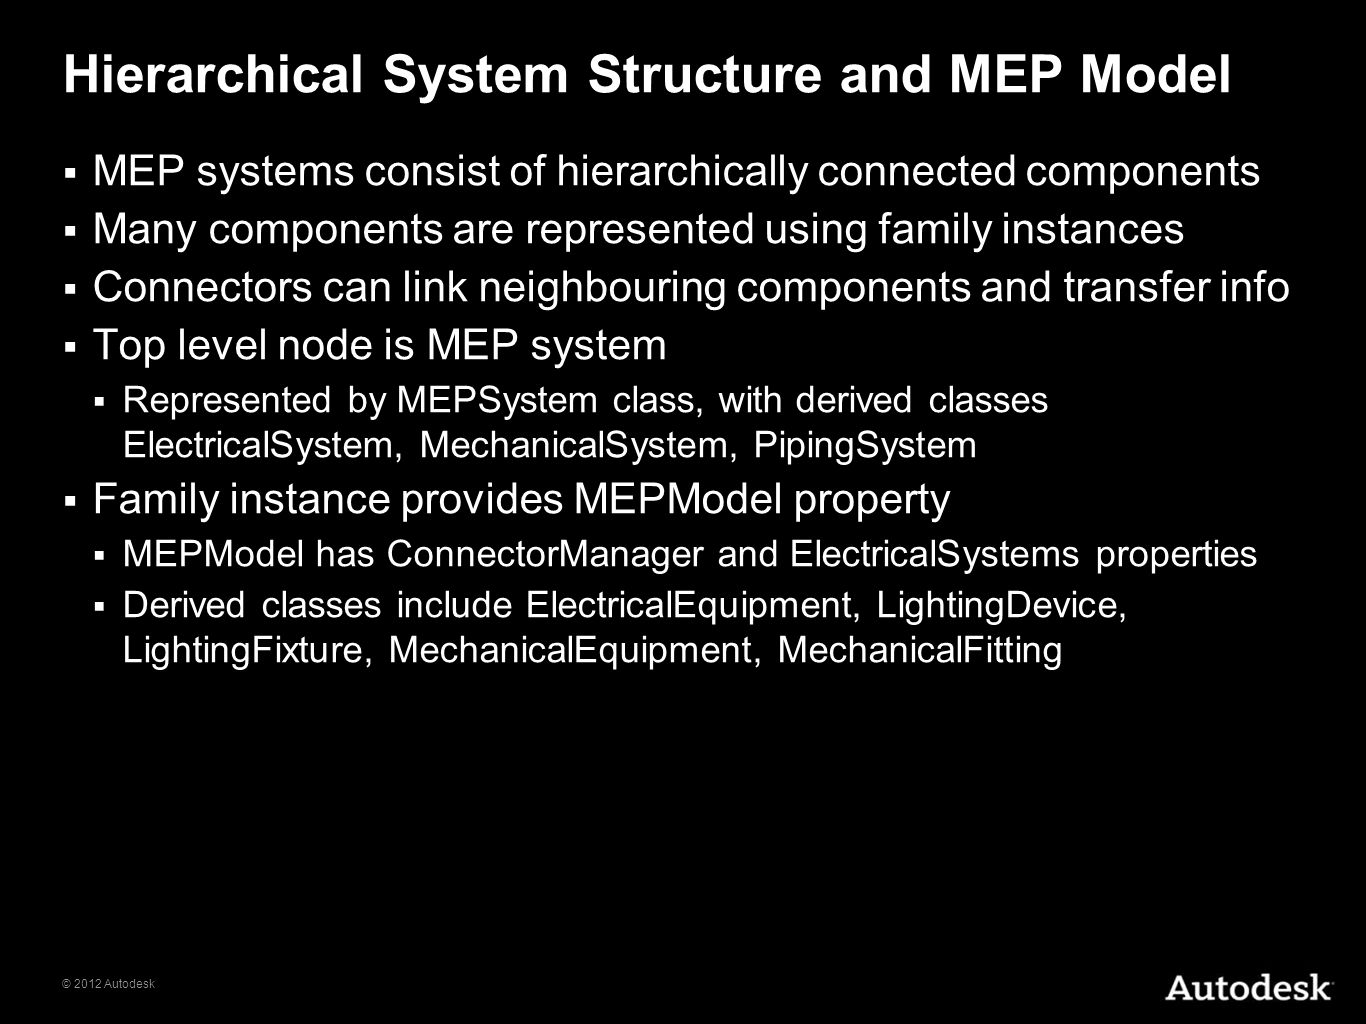 Hierarchical System Structure and MEP Model